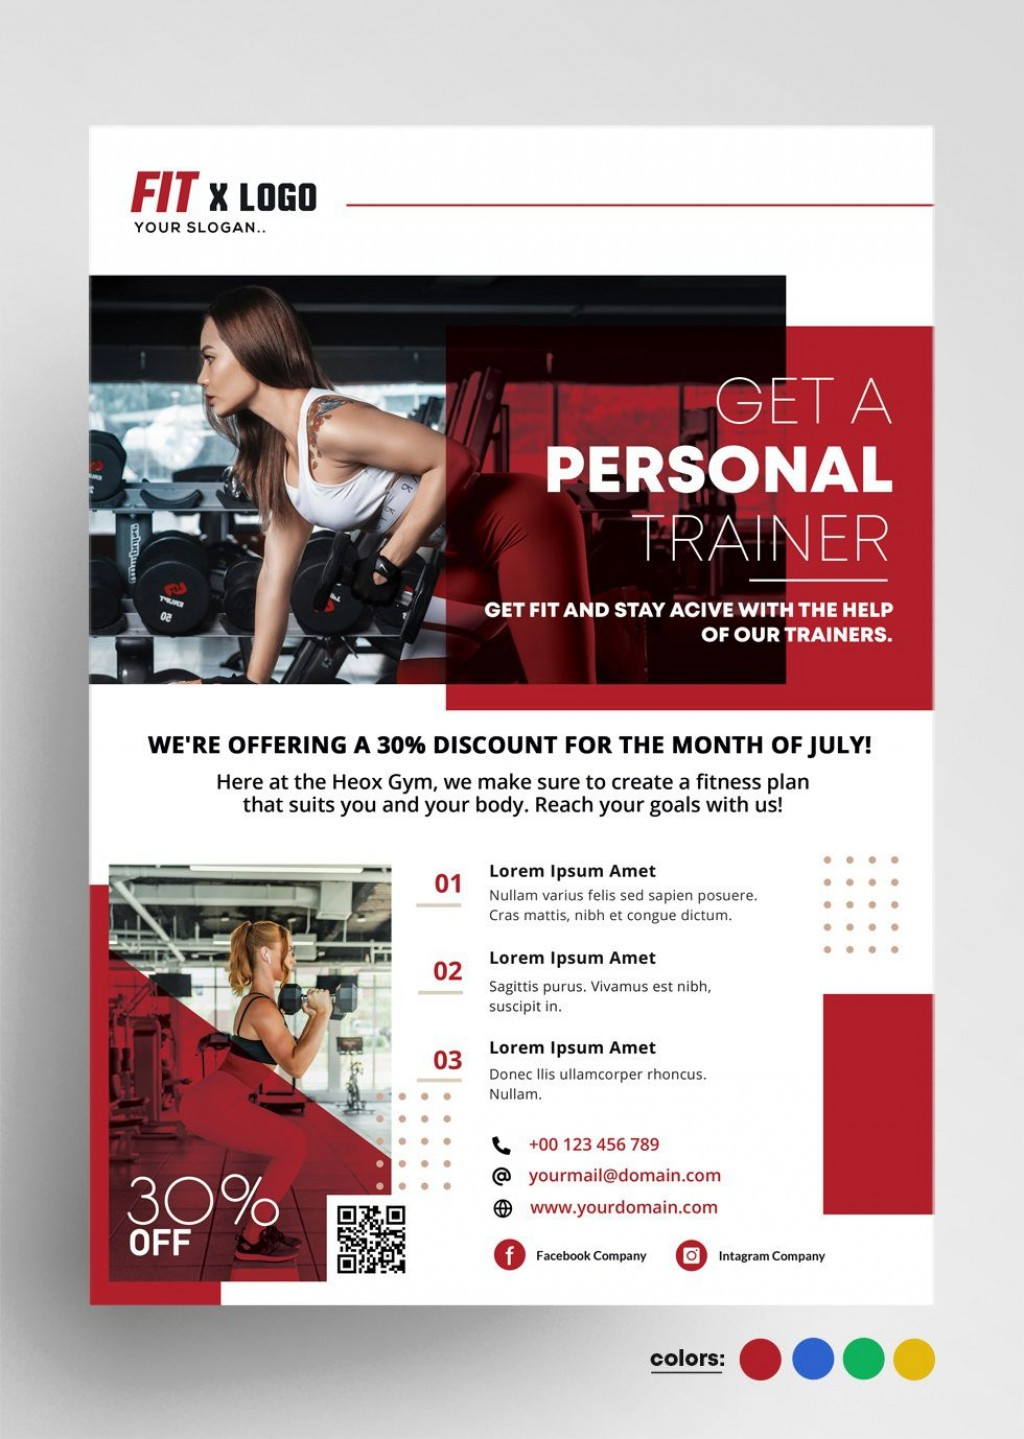 006 Sensational Personal Trainer Flyer Template Photo  Word PsdLarge